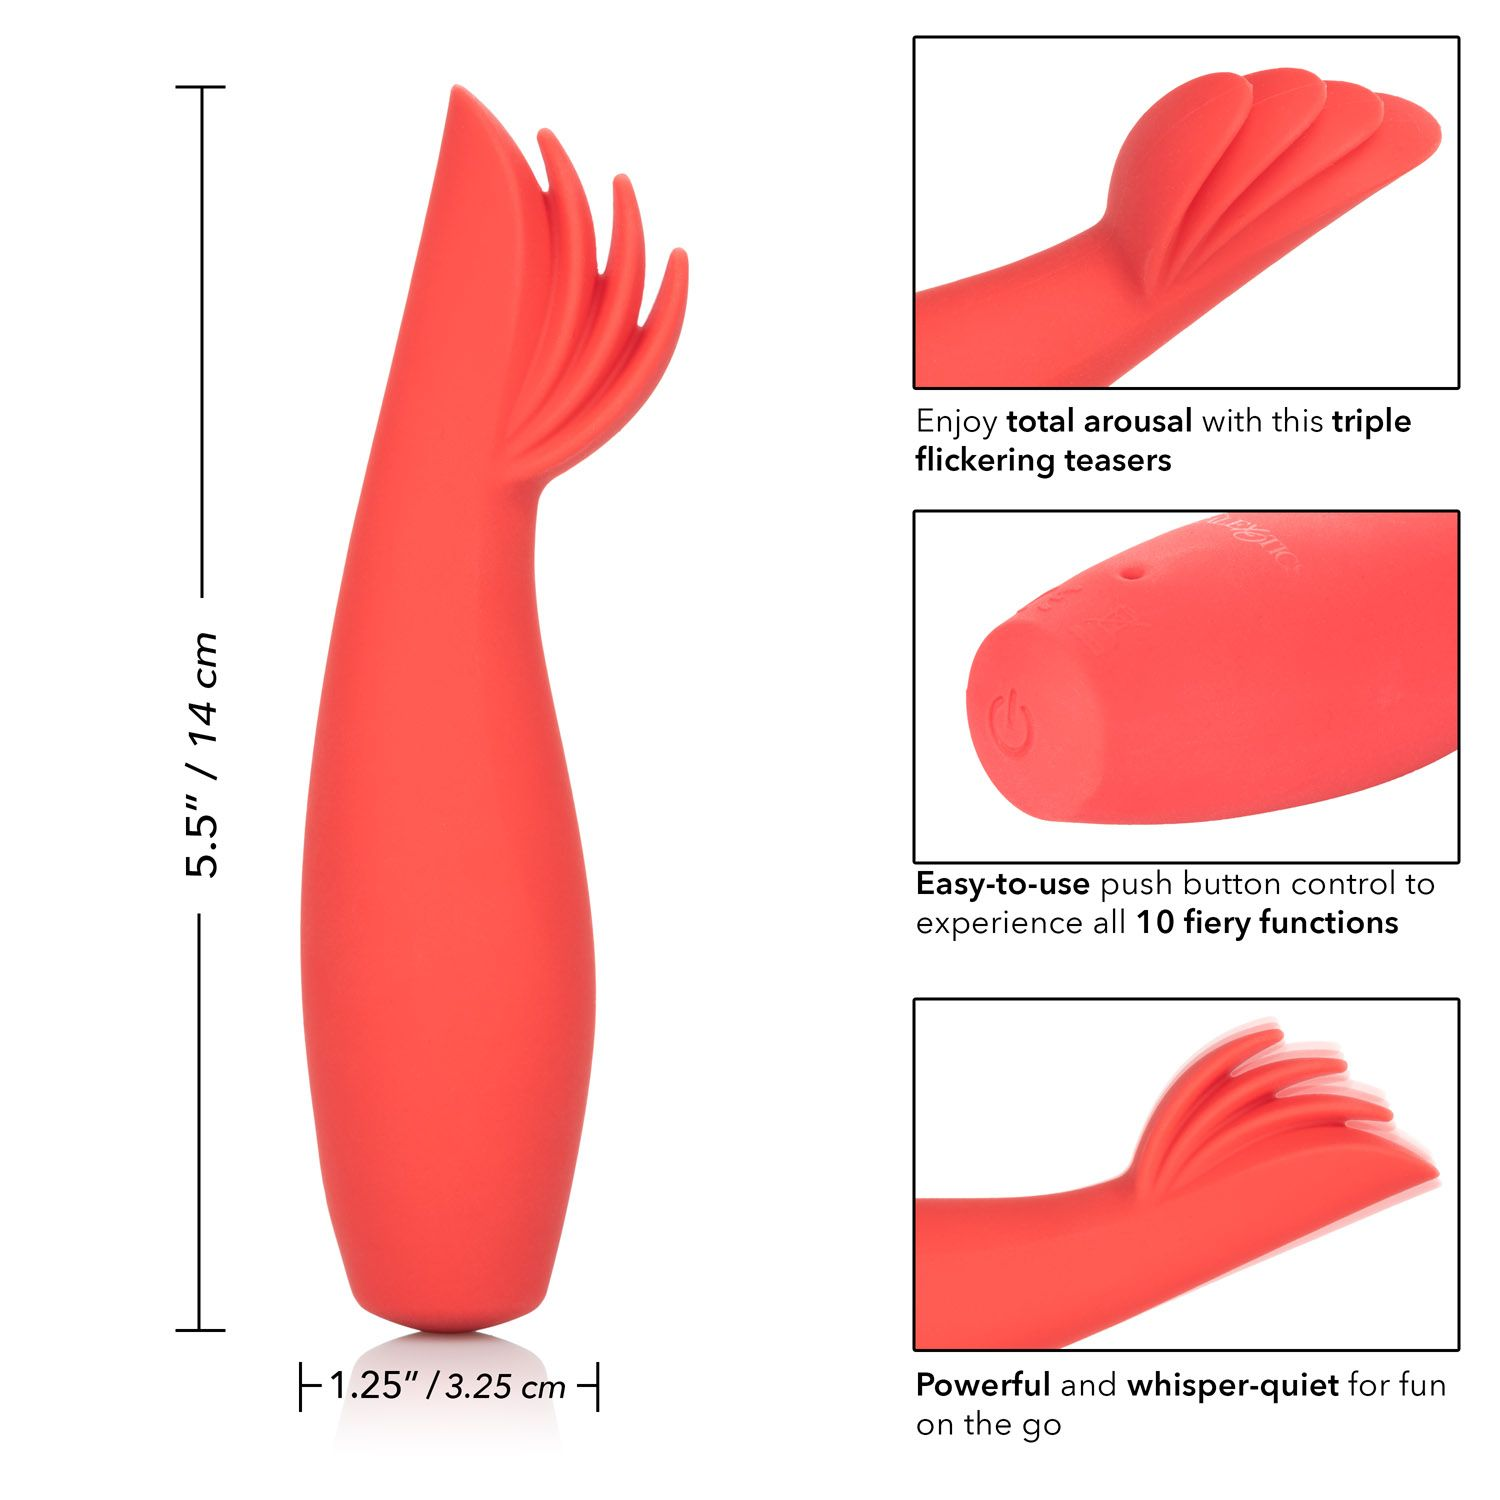 Calexotics Red Hot Blaze Clitoral Vibrator Red SE-4408-45-3 716770091482